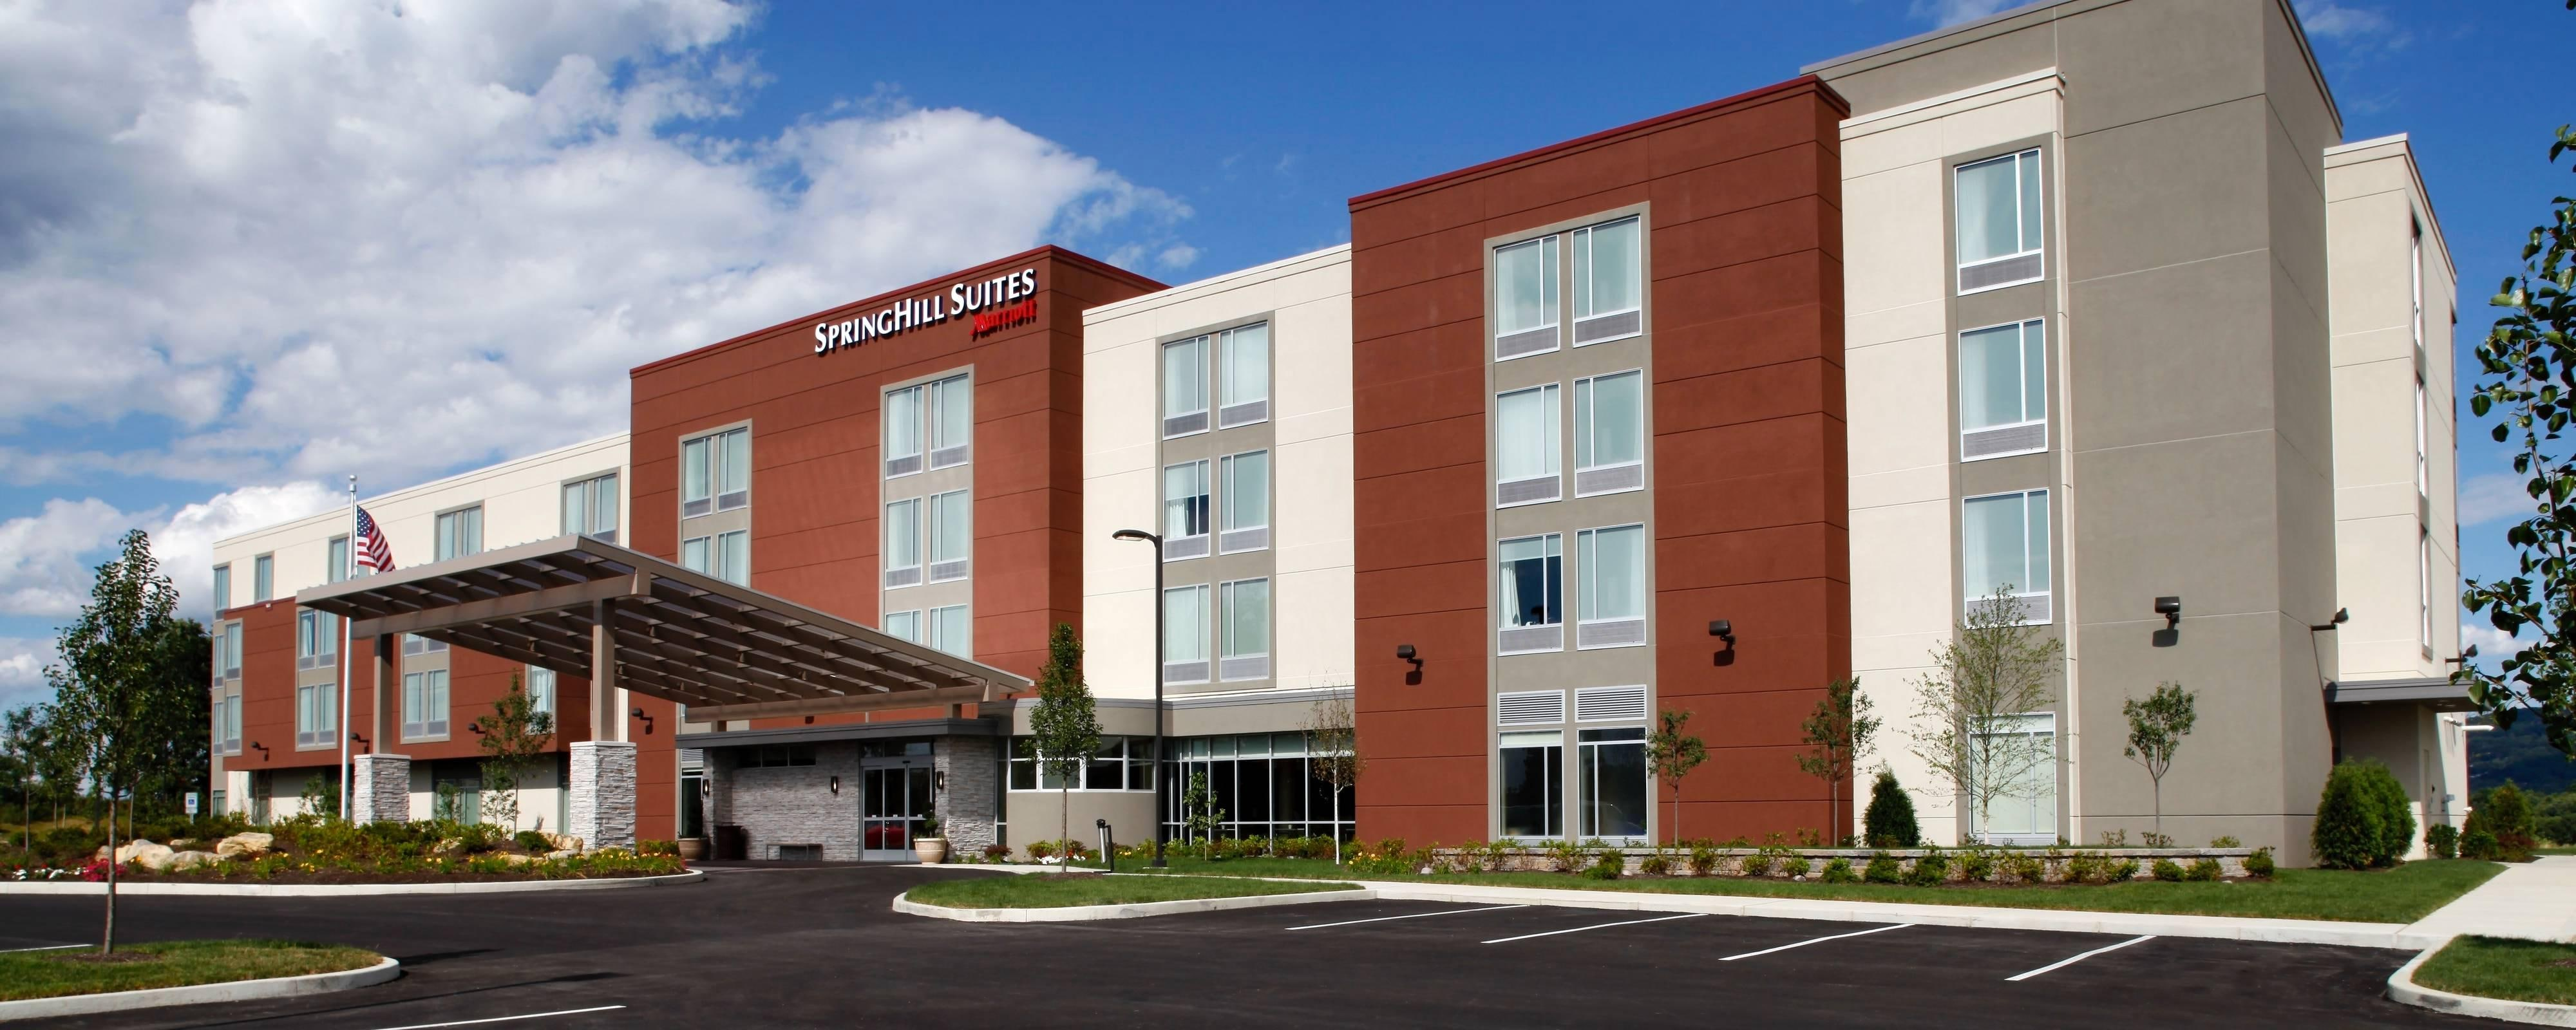 Hotel Amenities Contact Information Springhill Suites Pittsburgh Latrobe